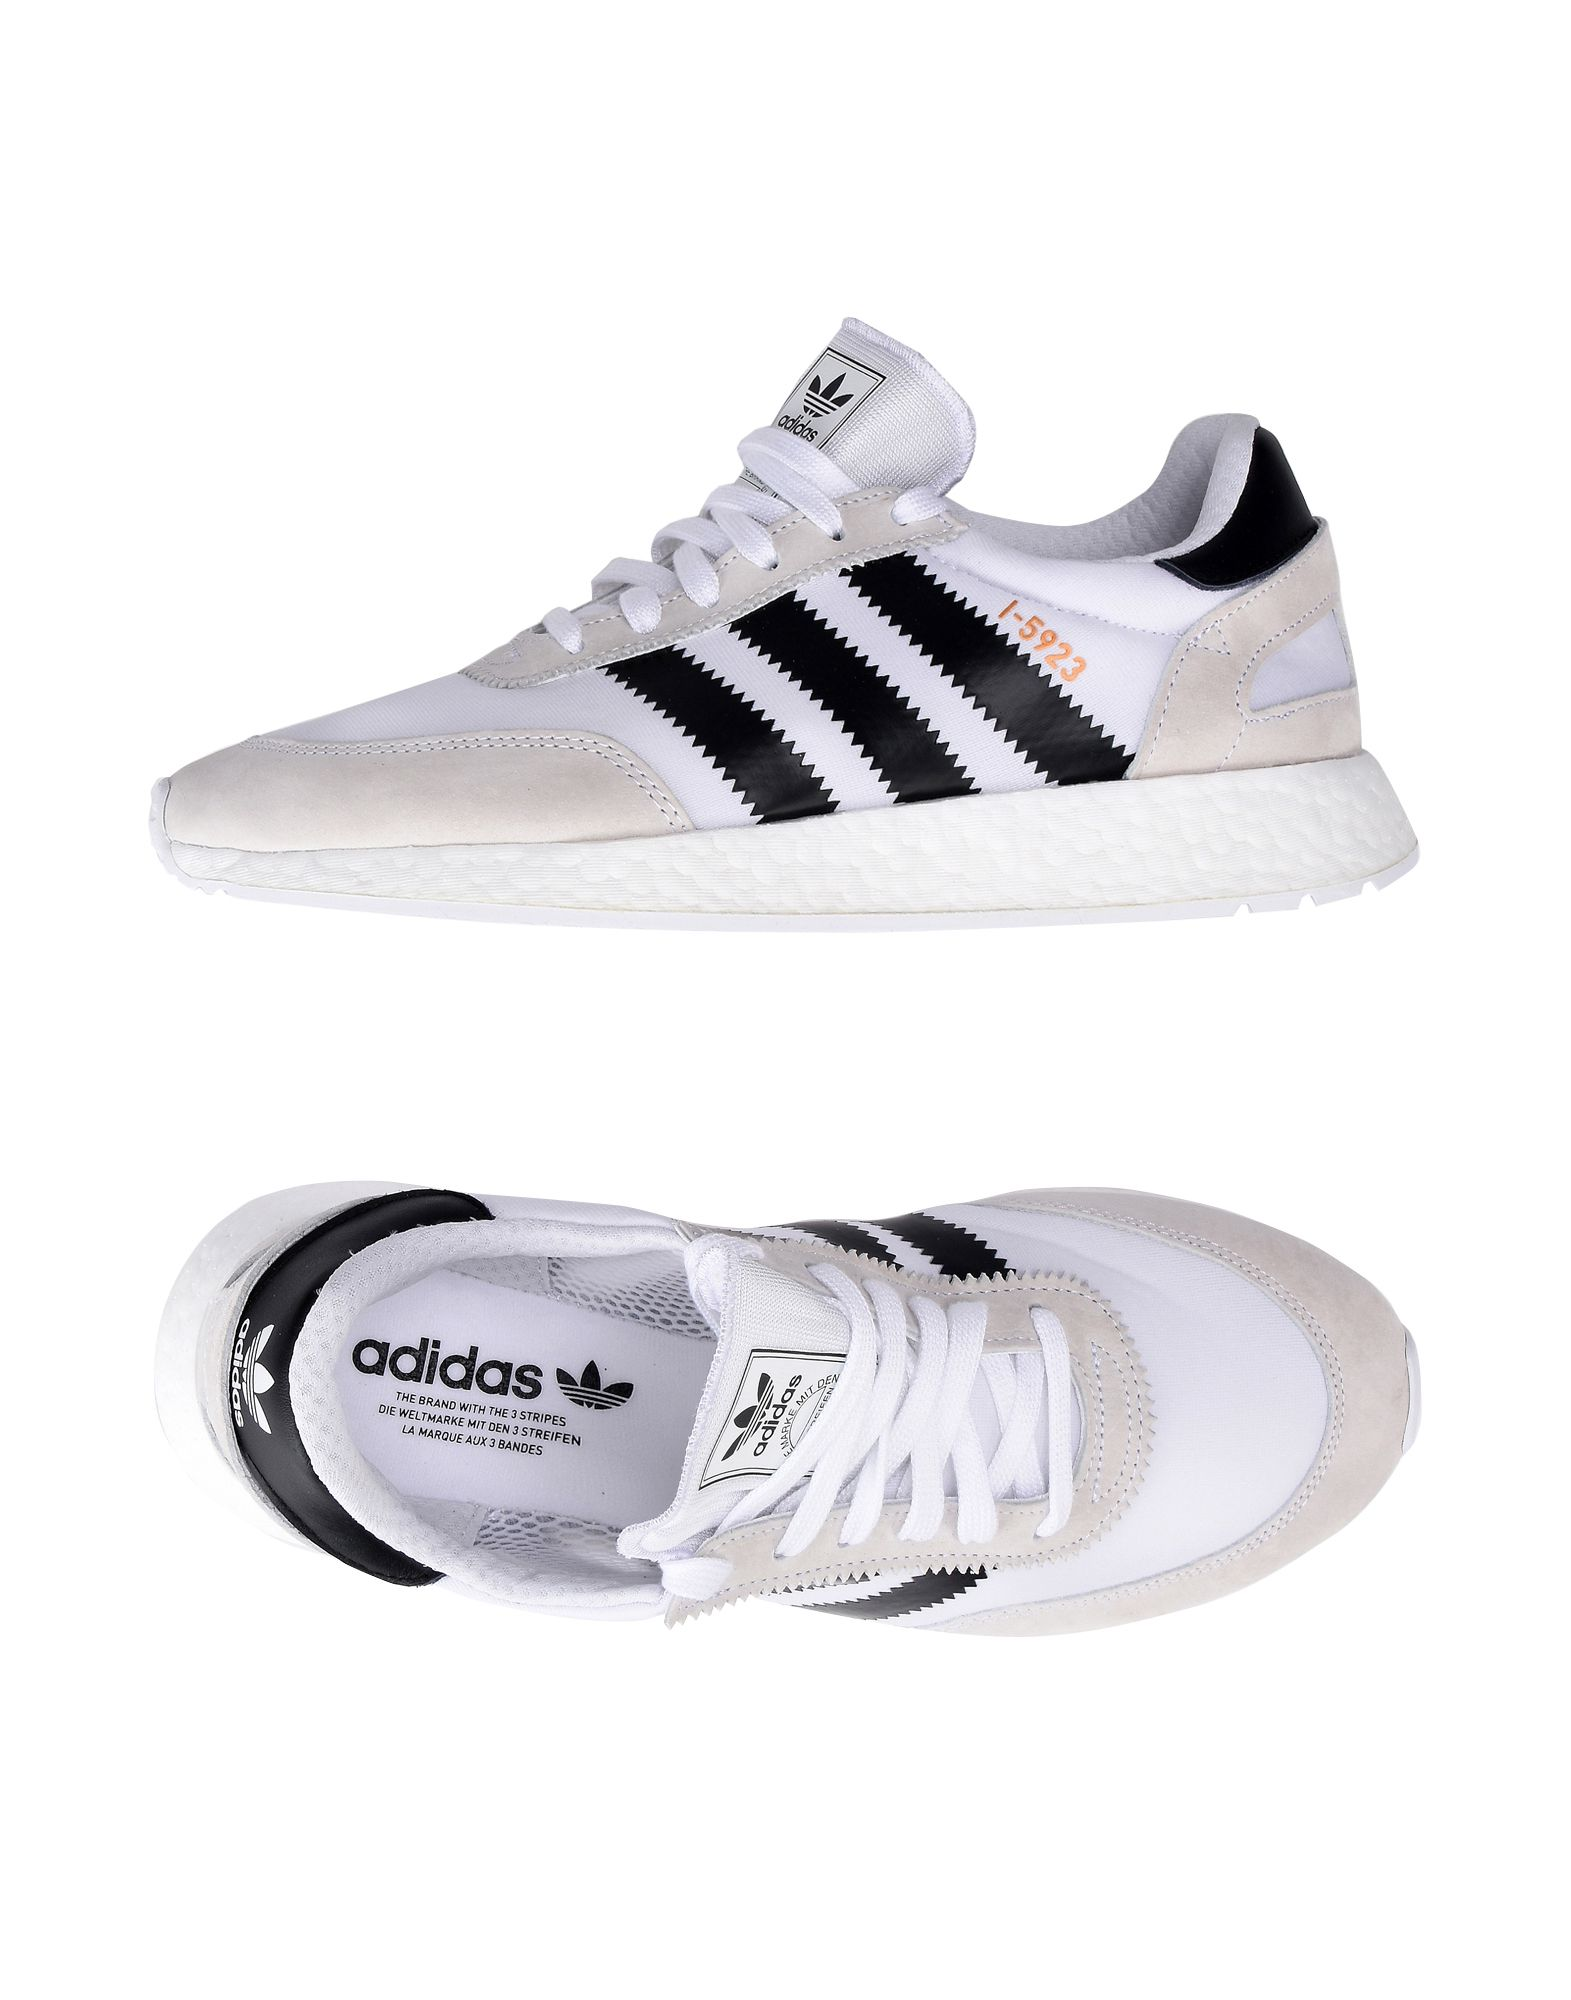 Sneakers Adidas Originals I-5923 - Femme - Sneakers Adidas Originals sur